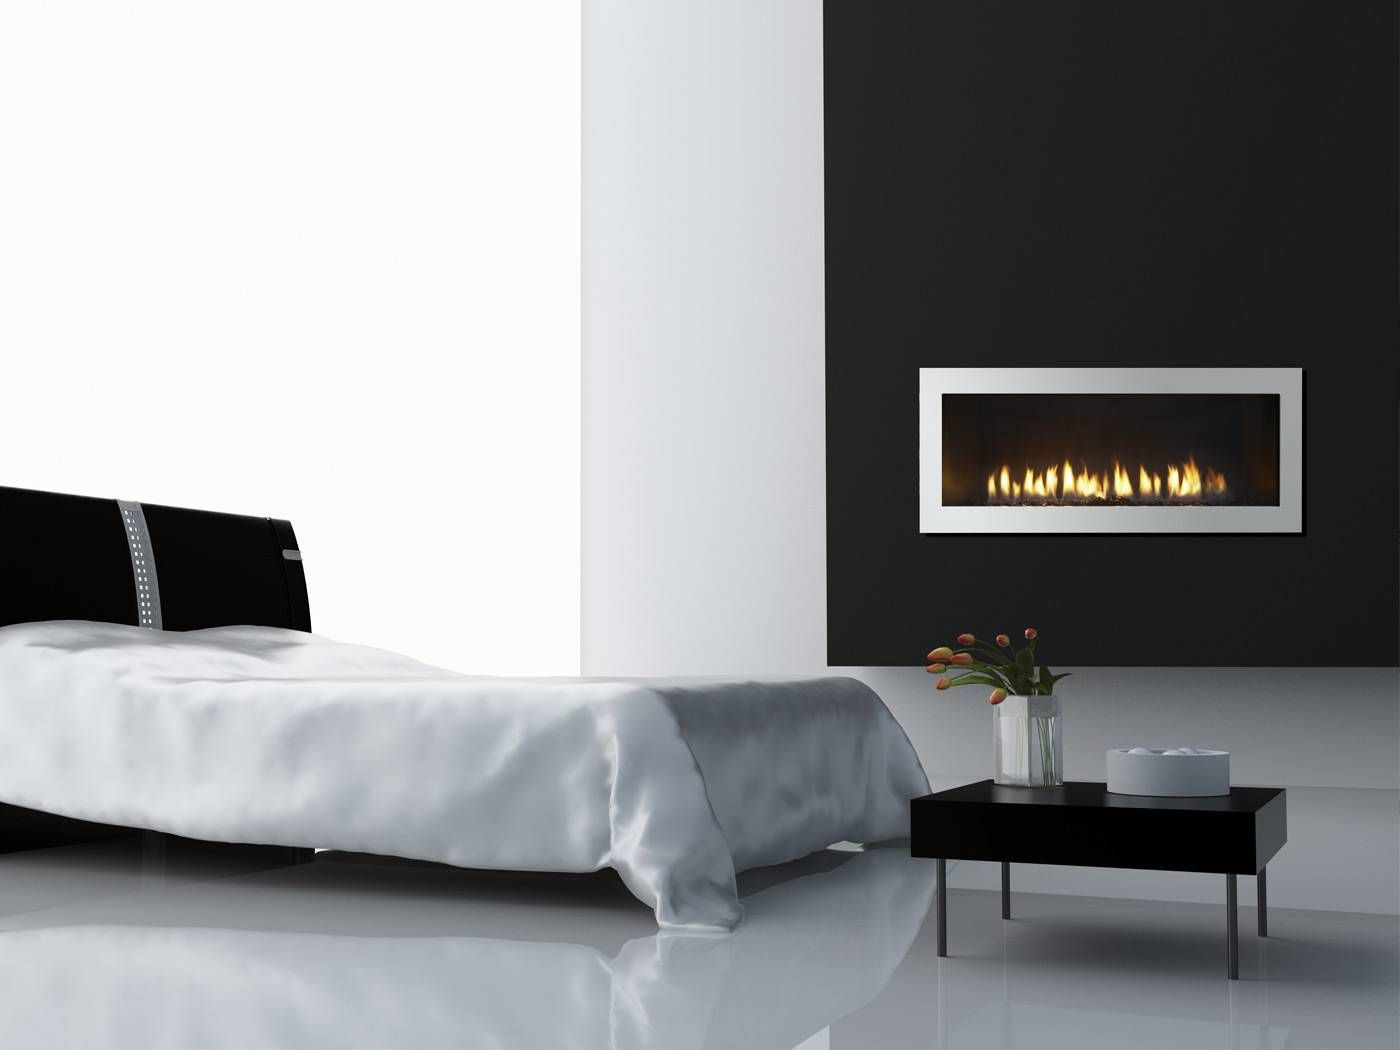 17 Best images about Heat   Glo Cosmo on Pinterest   Urban looks  Gas  fireplaces and Fireplaces. 17 Best images about Heat   Glo Cosmo on Pinterest   Urban looks